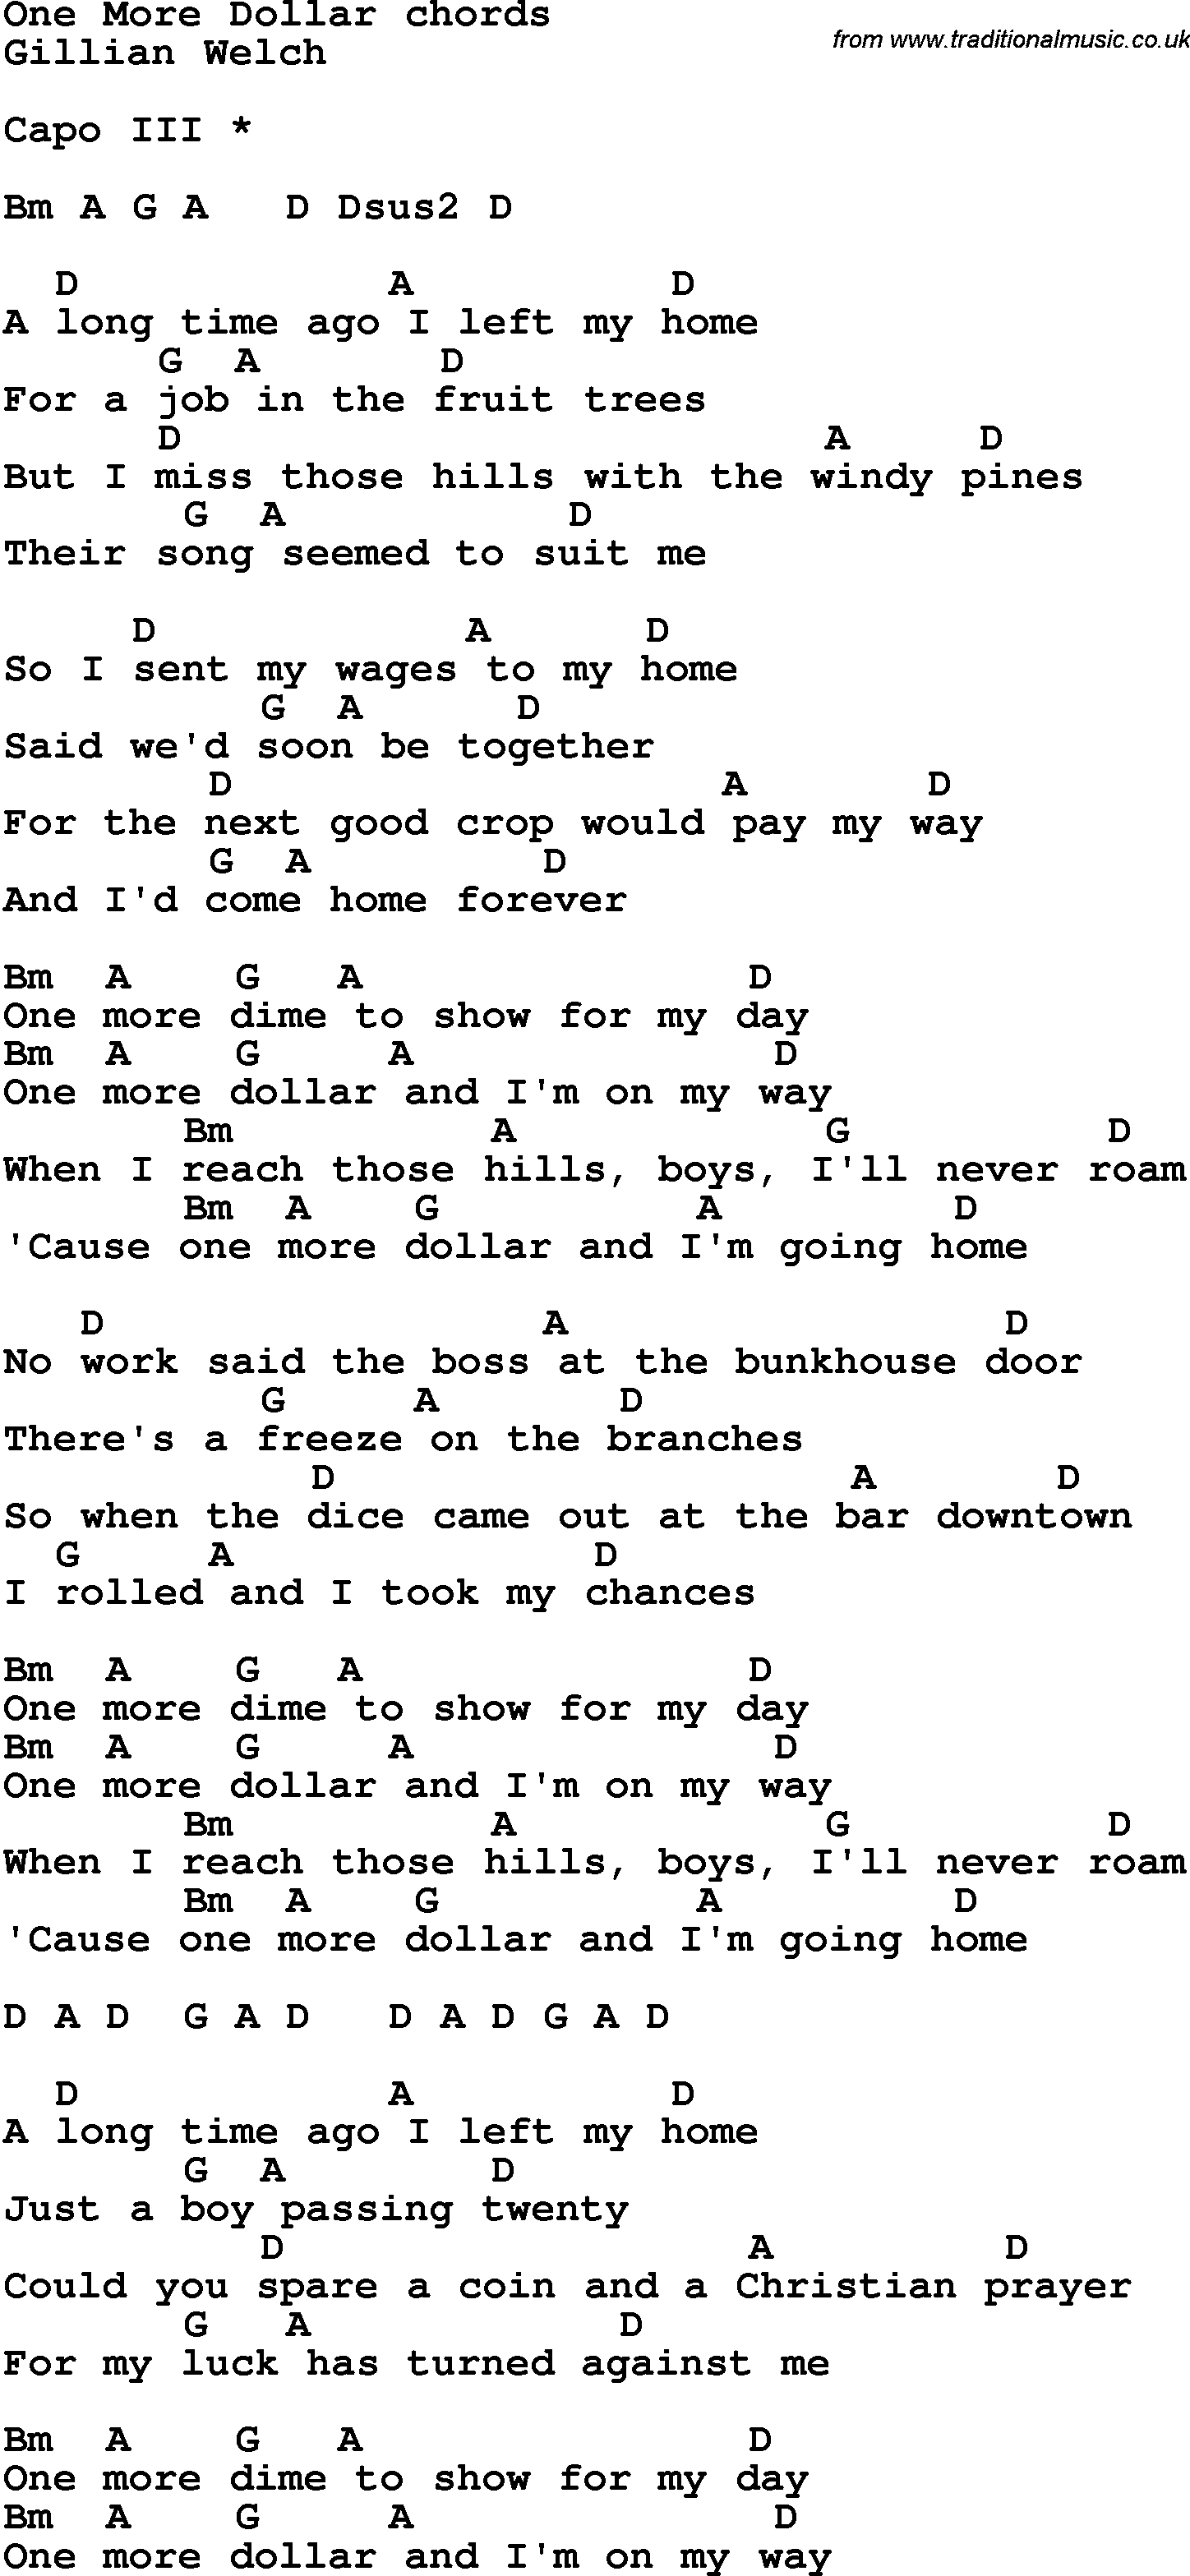 Song lyrics with guitar chords for One More Dollar